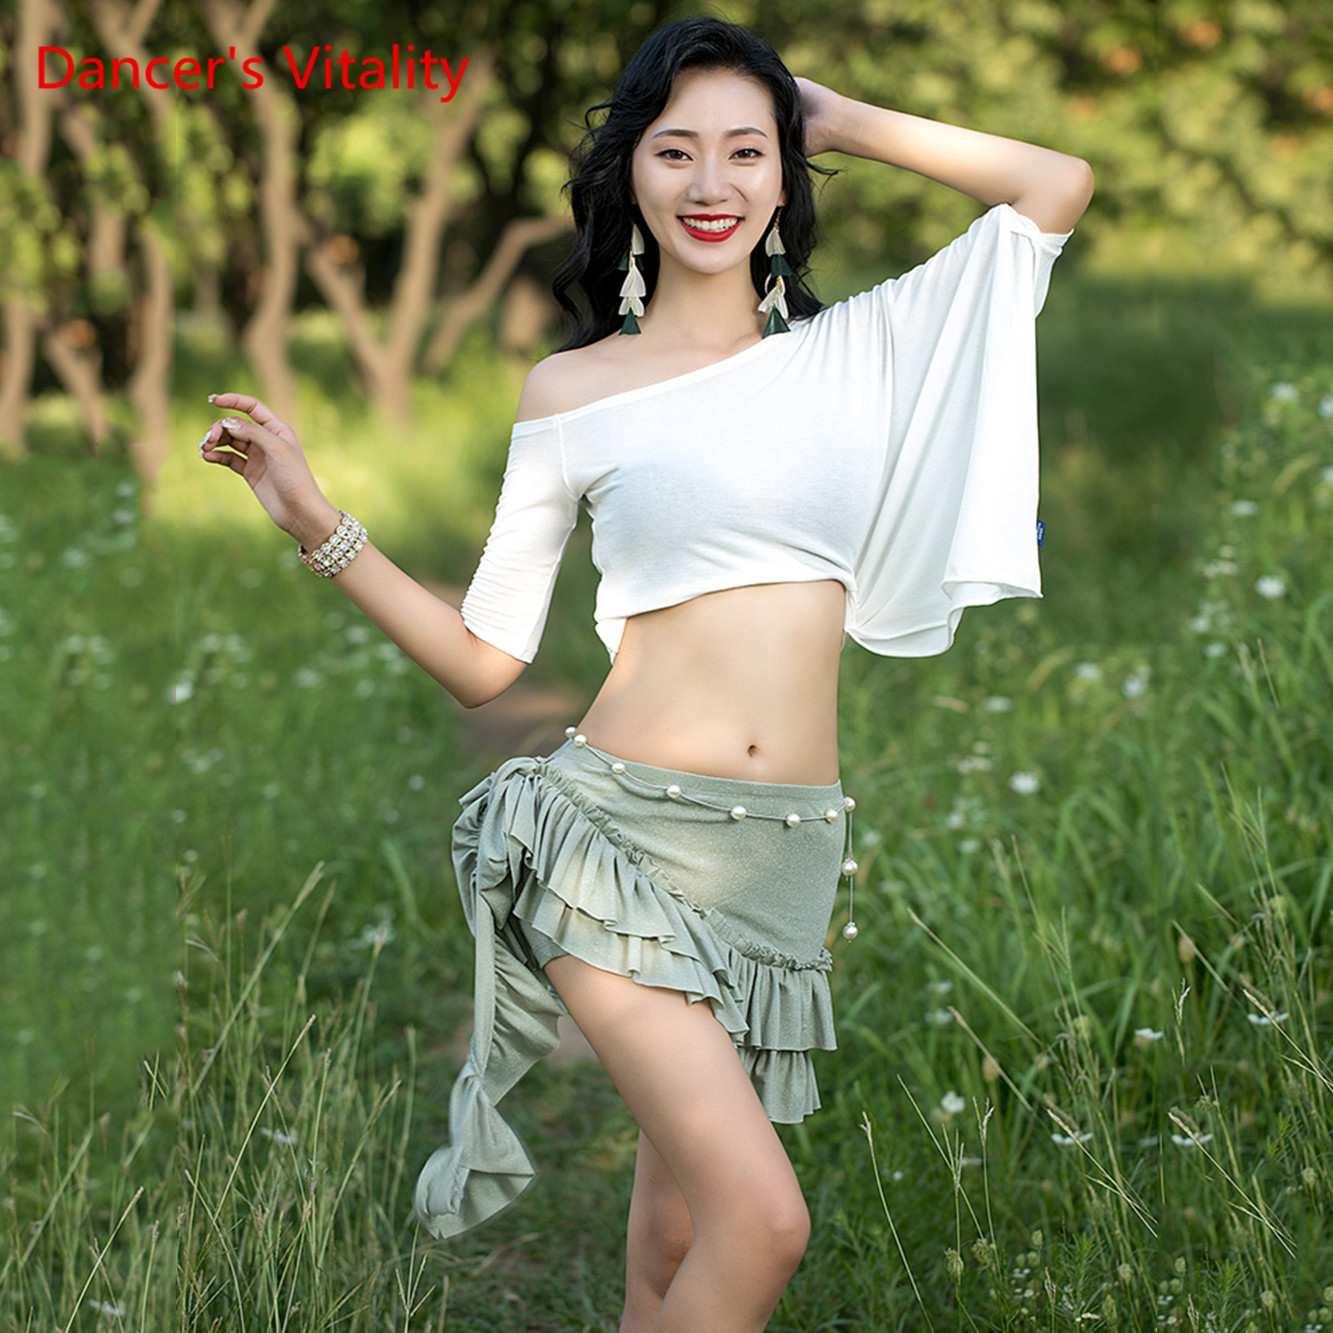 New Knit Sexy Top Belly Dance Lace Hip Scarf Short Skirt Belly Dance Practice Clothes Free Delivery